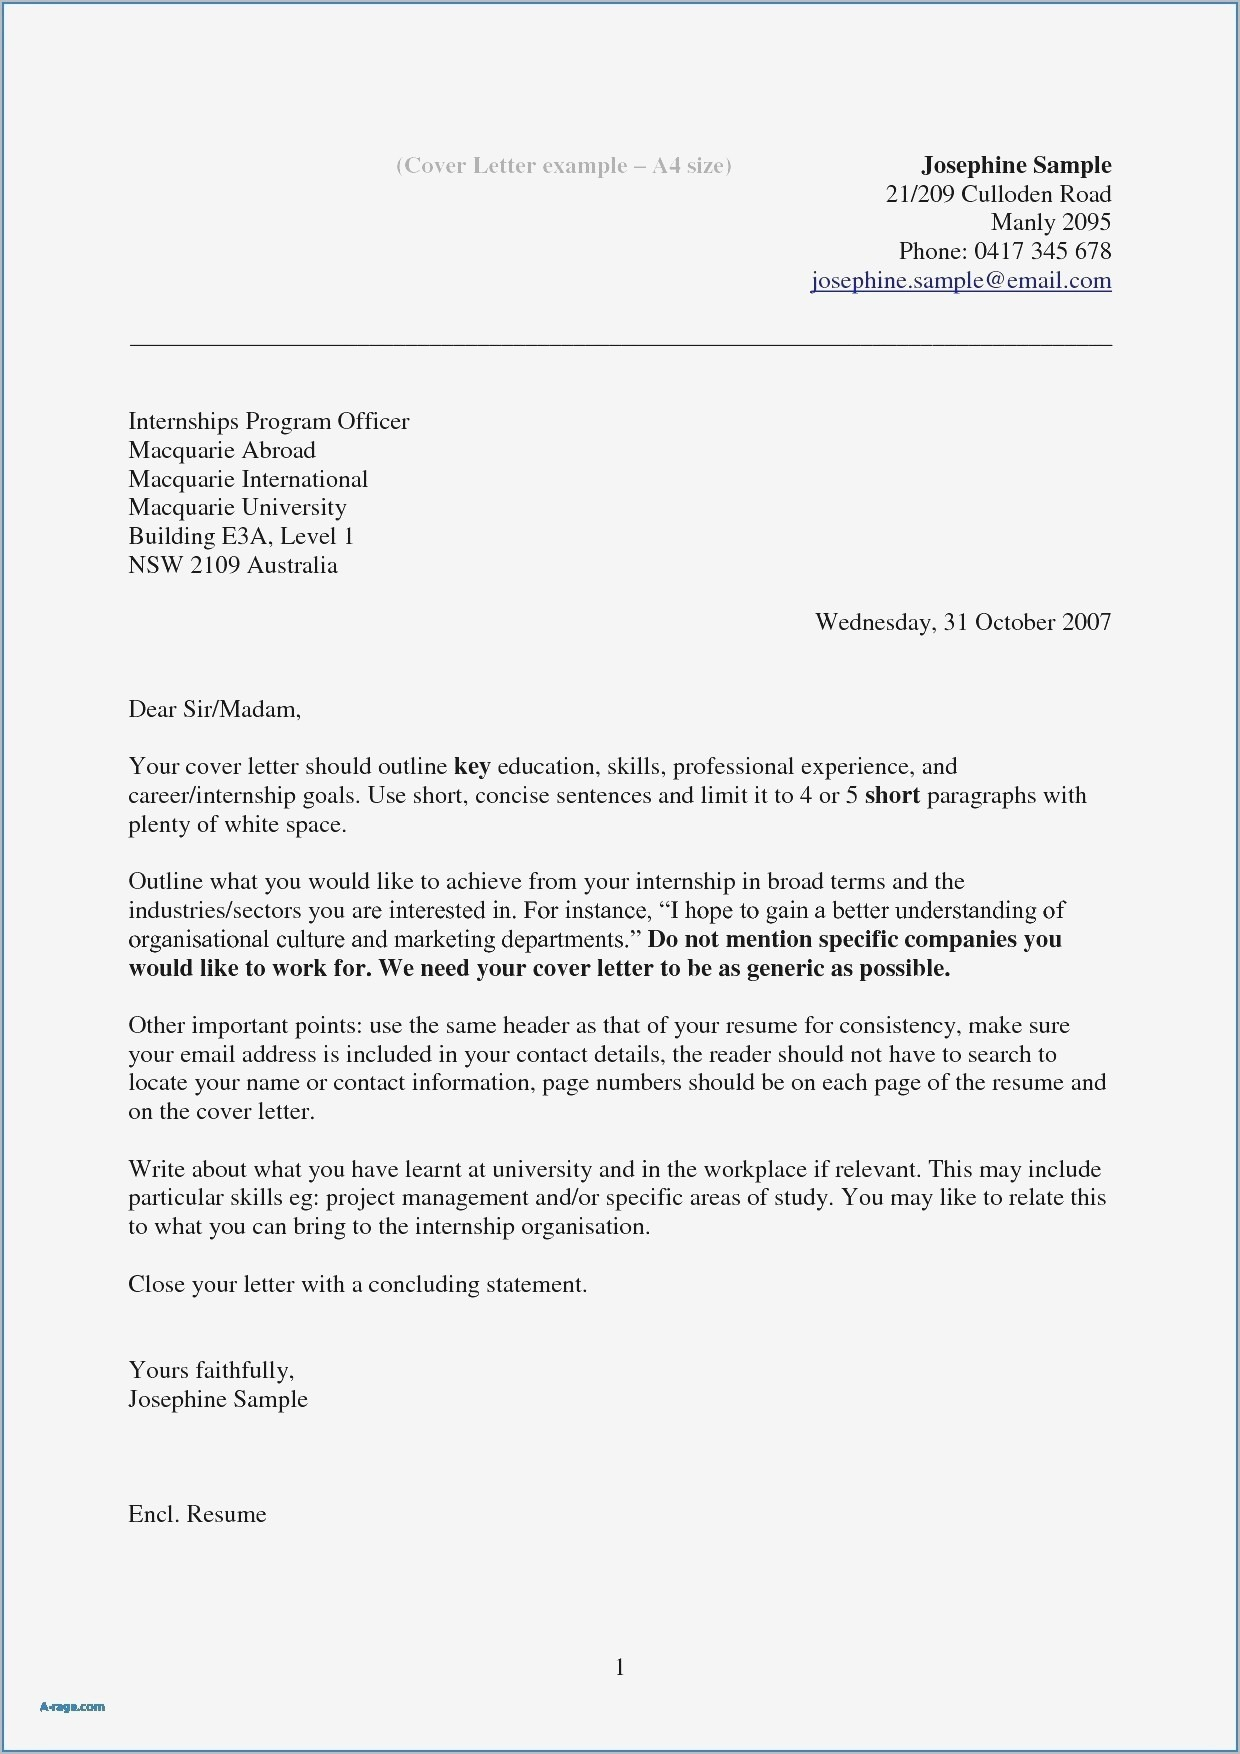 email letter template Collection-Free Resume Letter Templates Fresh Inspirational Pr Resume Template Elegant Dictionary Template 0d 6-q